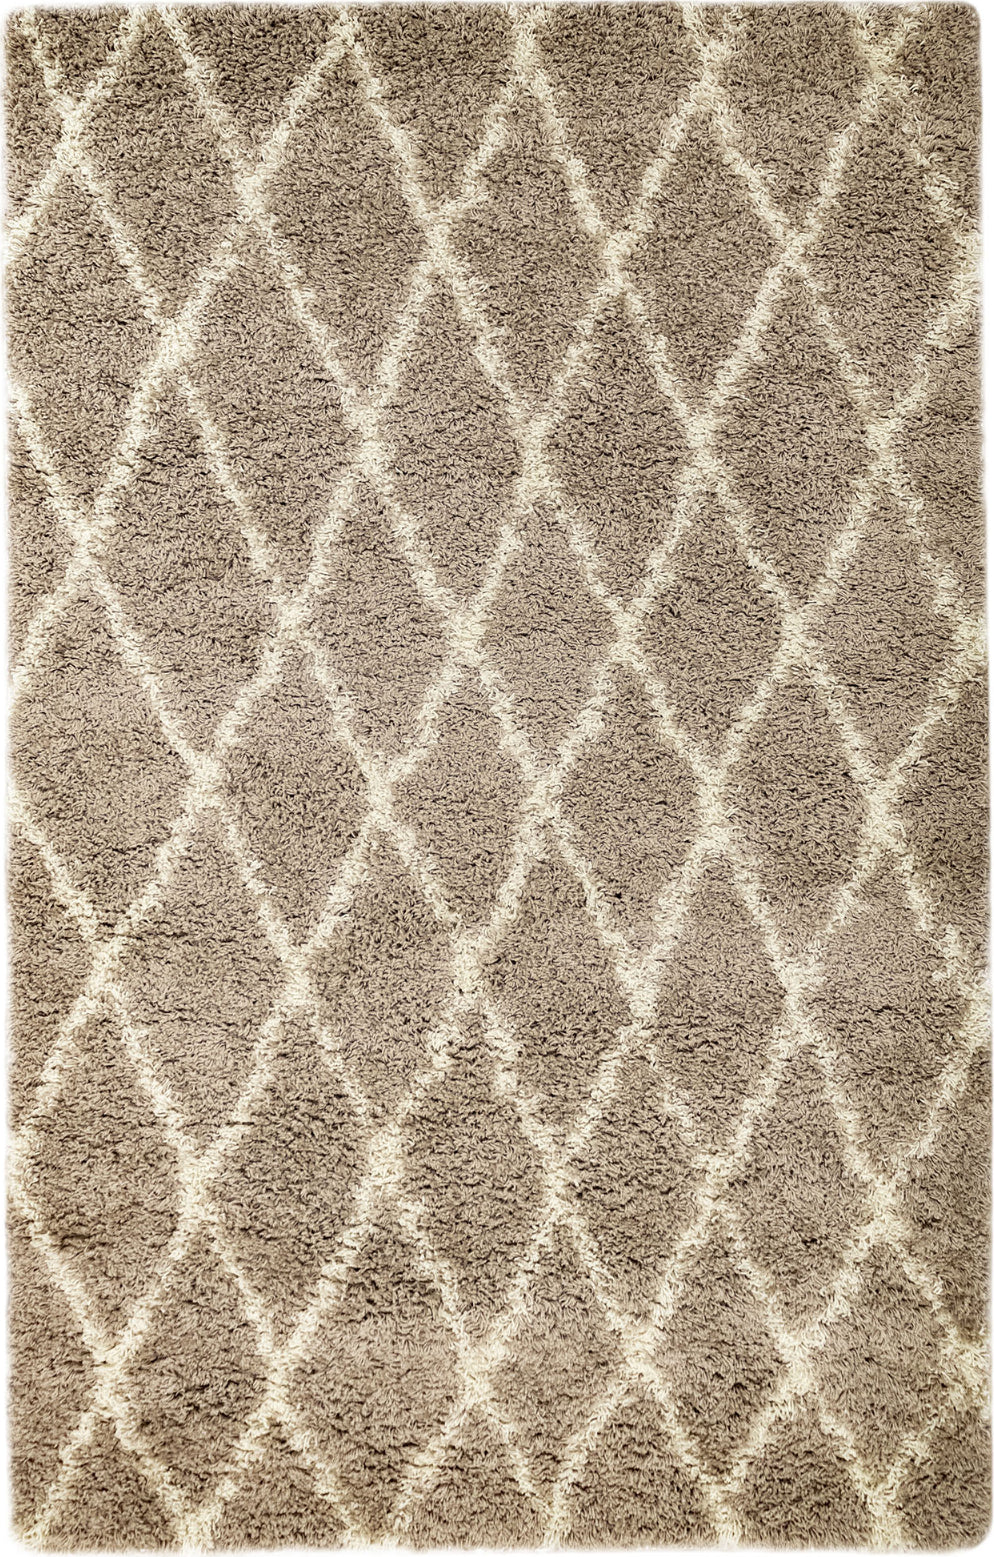 Trans Ocean Rio Diamonds Beige Area Rug Mirror by Liora Manne main image